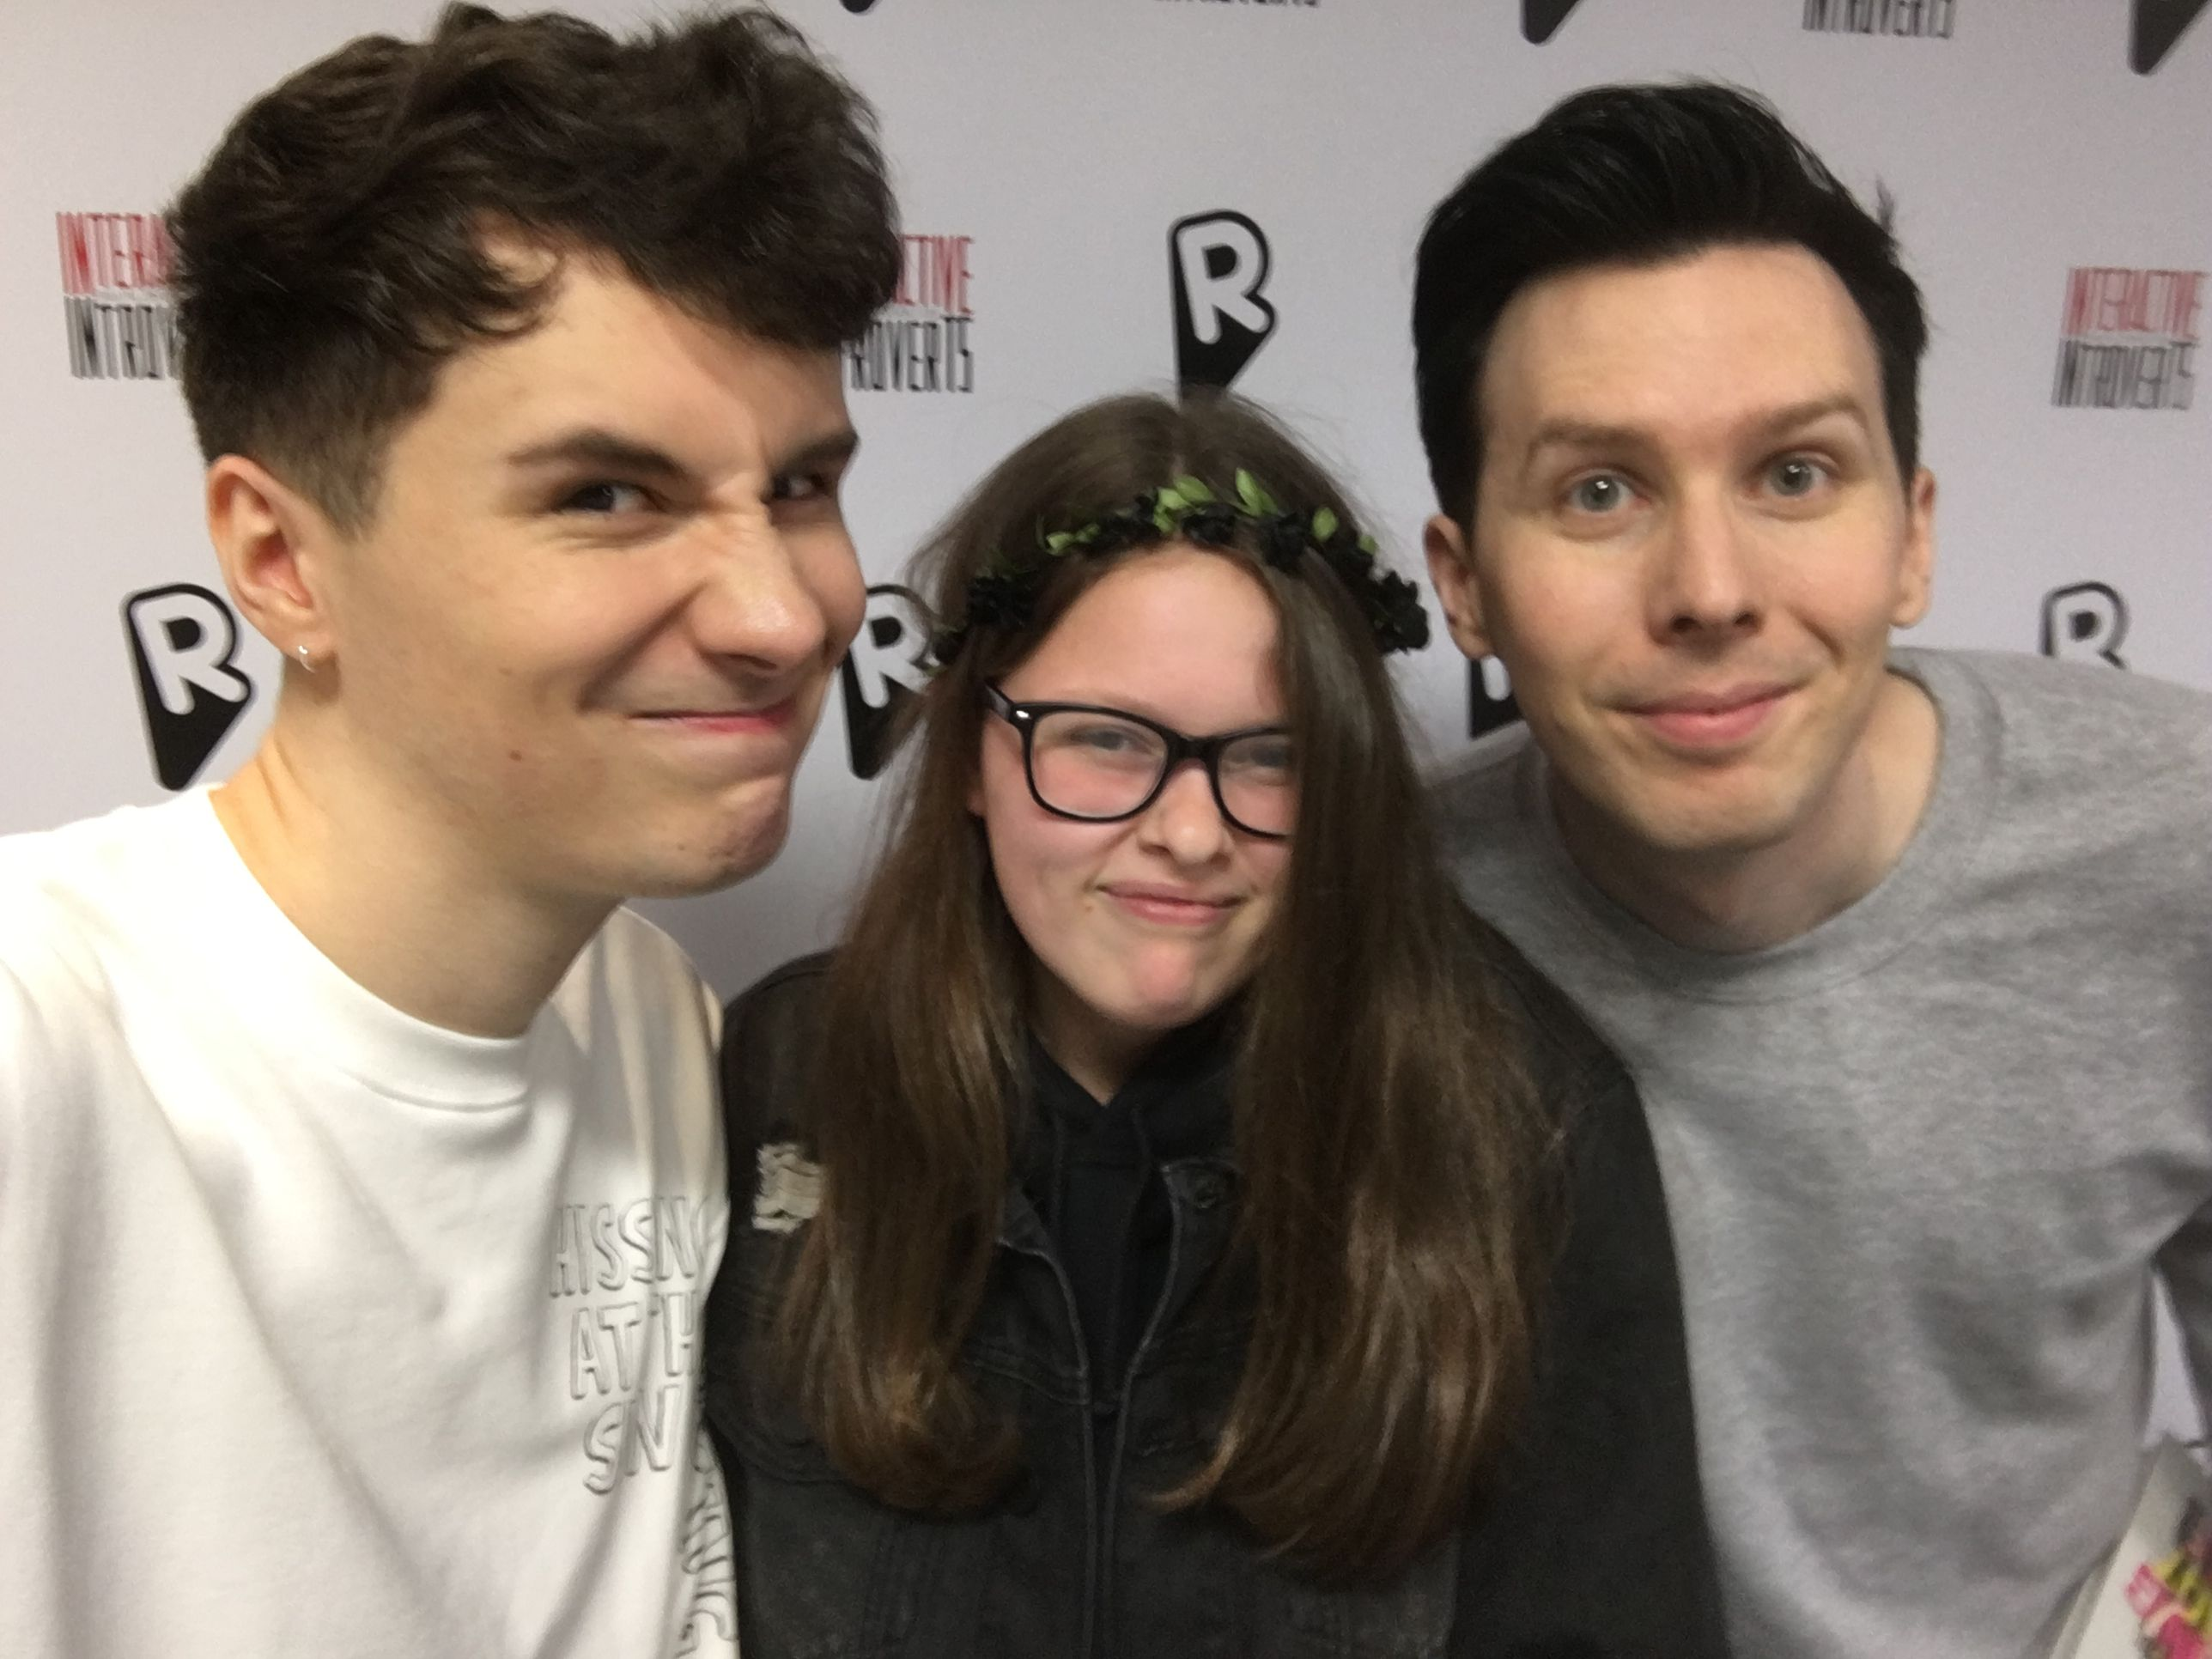 I Met Dan And Phil Pulled A Face For The Selfie Told Me Not To Worry They Are So Bloody Amazing Love Them Much